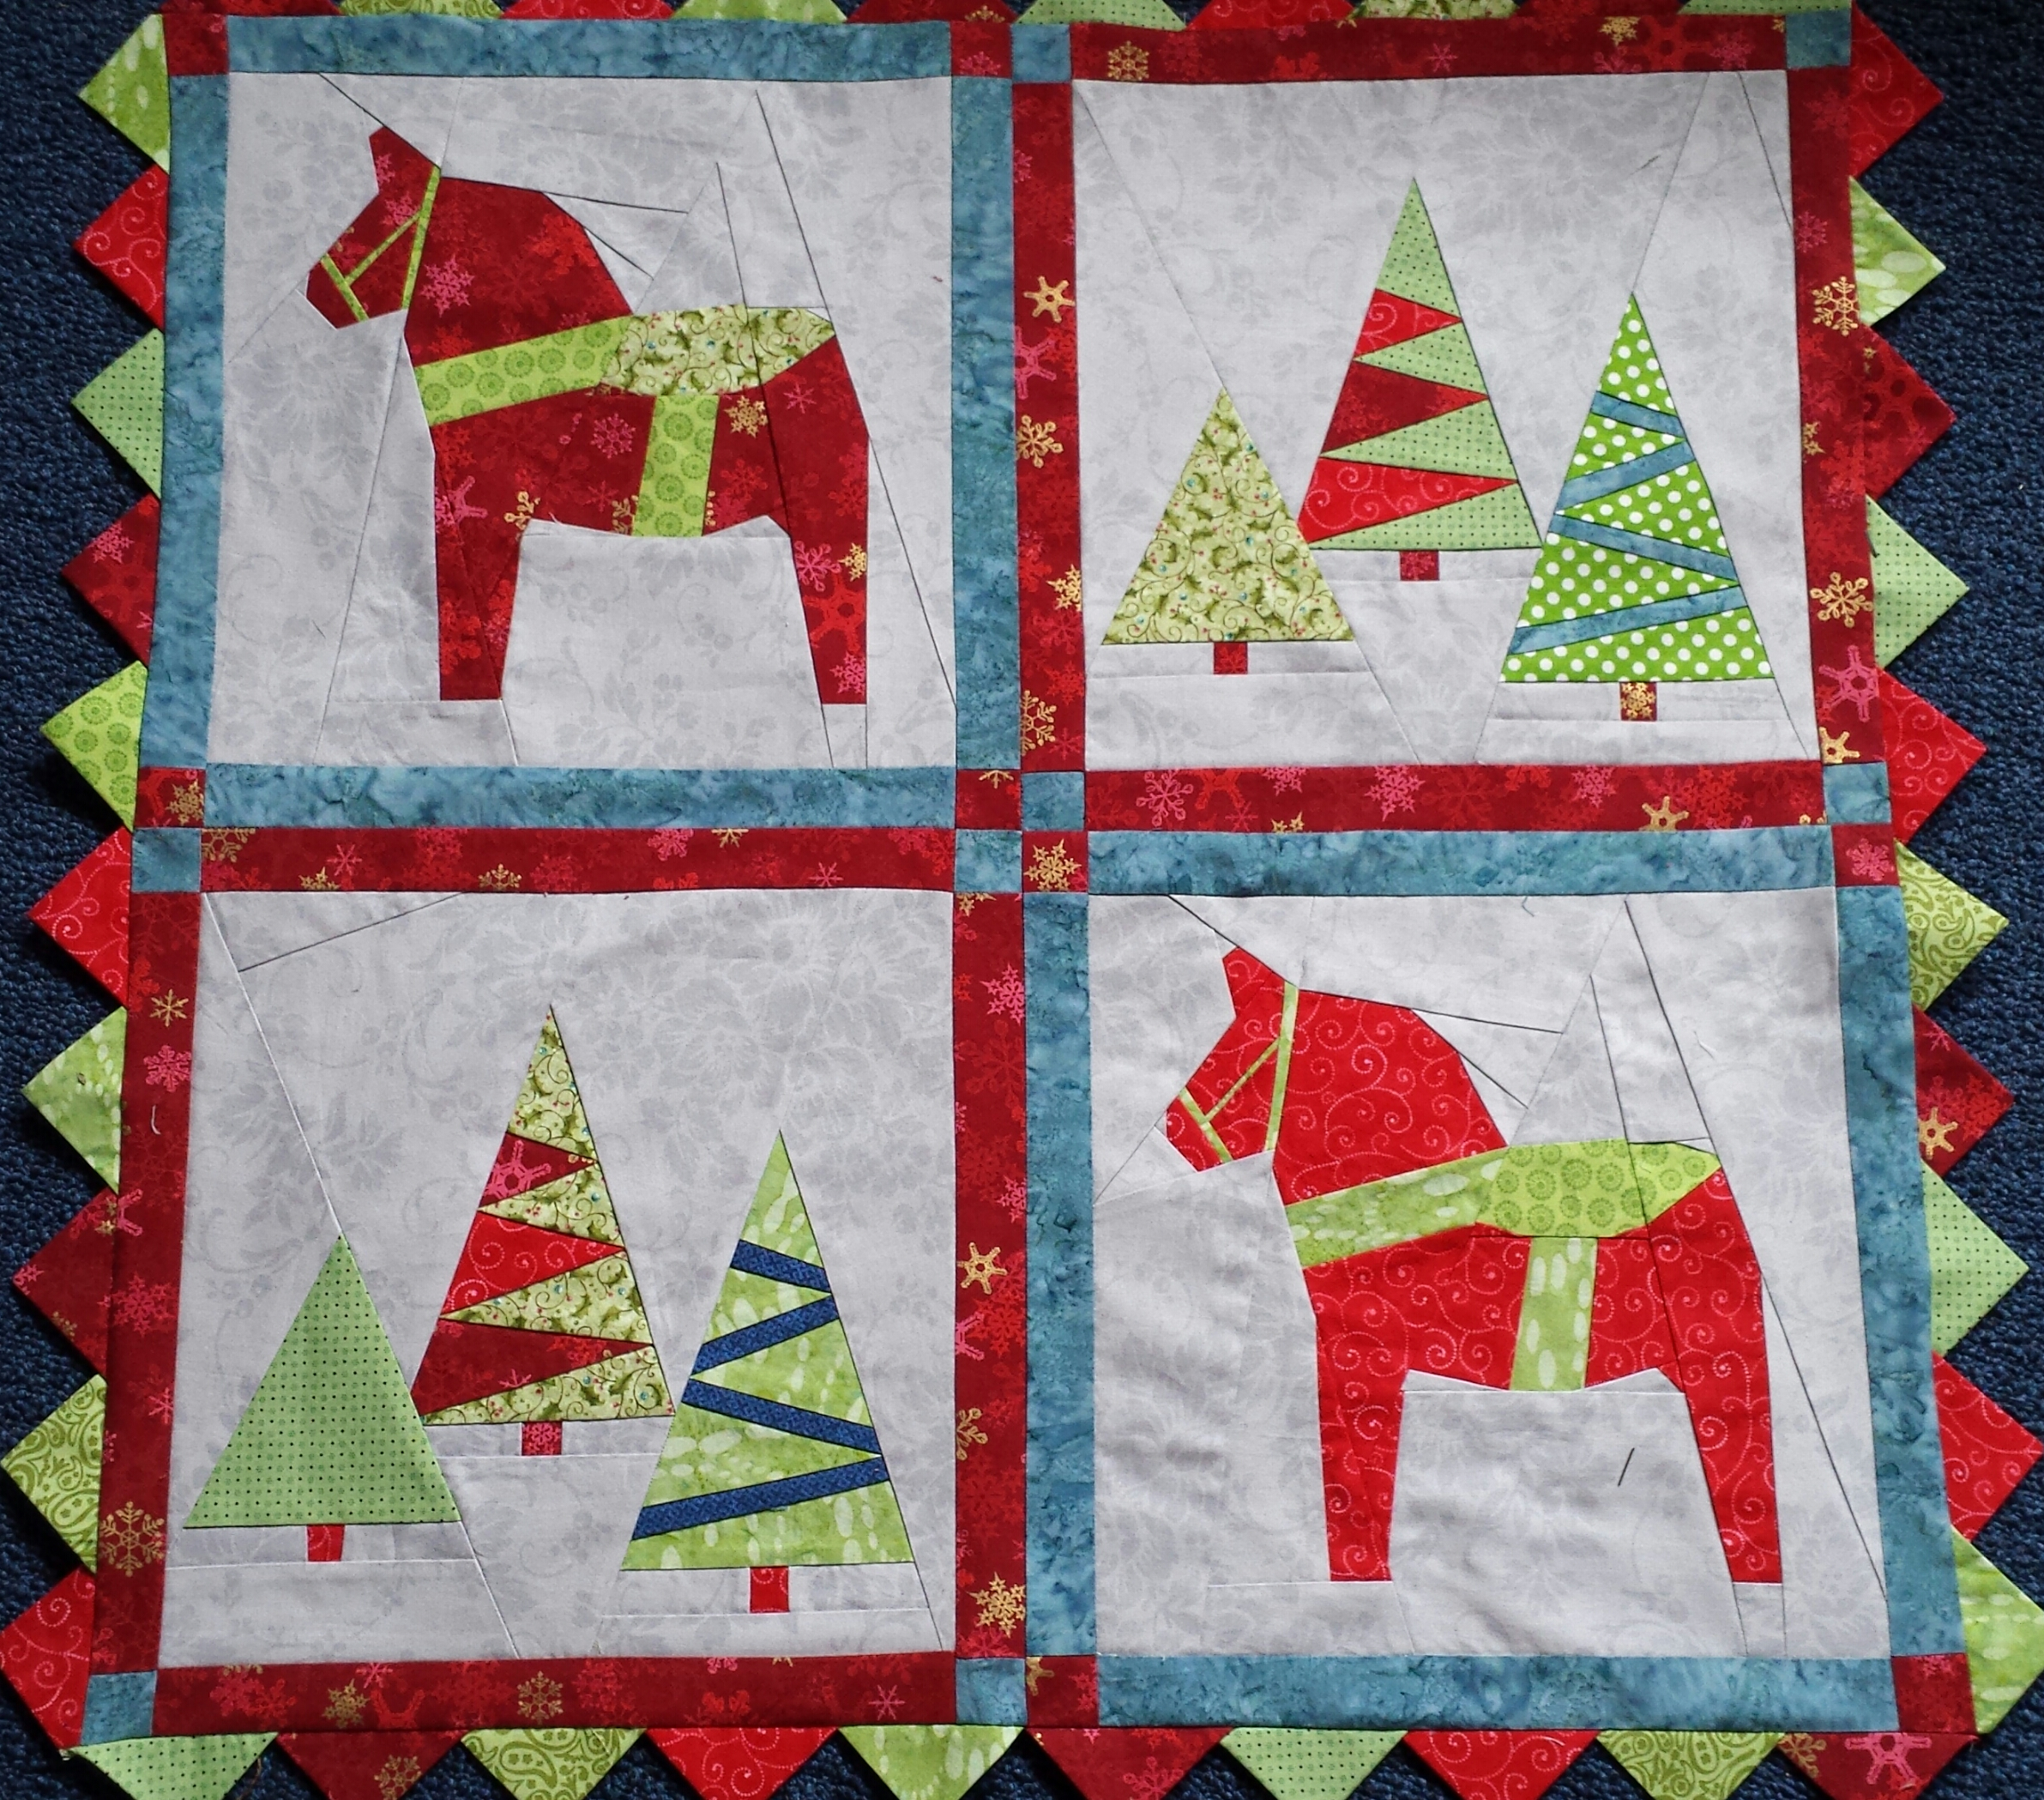 archive christmas march view quilt image quilts sampler fullscreen